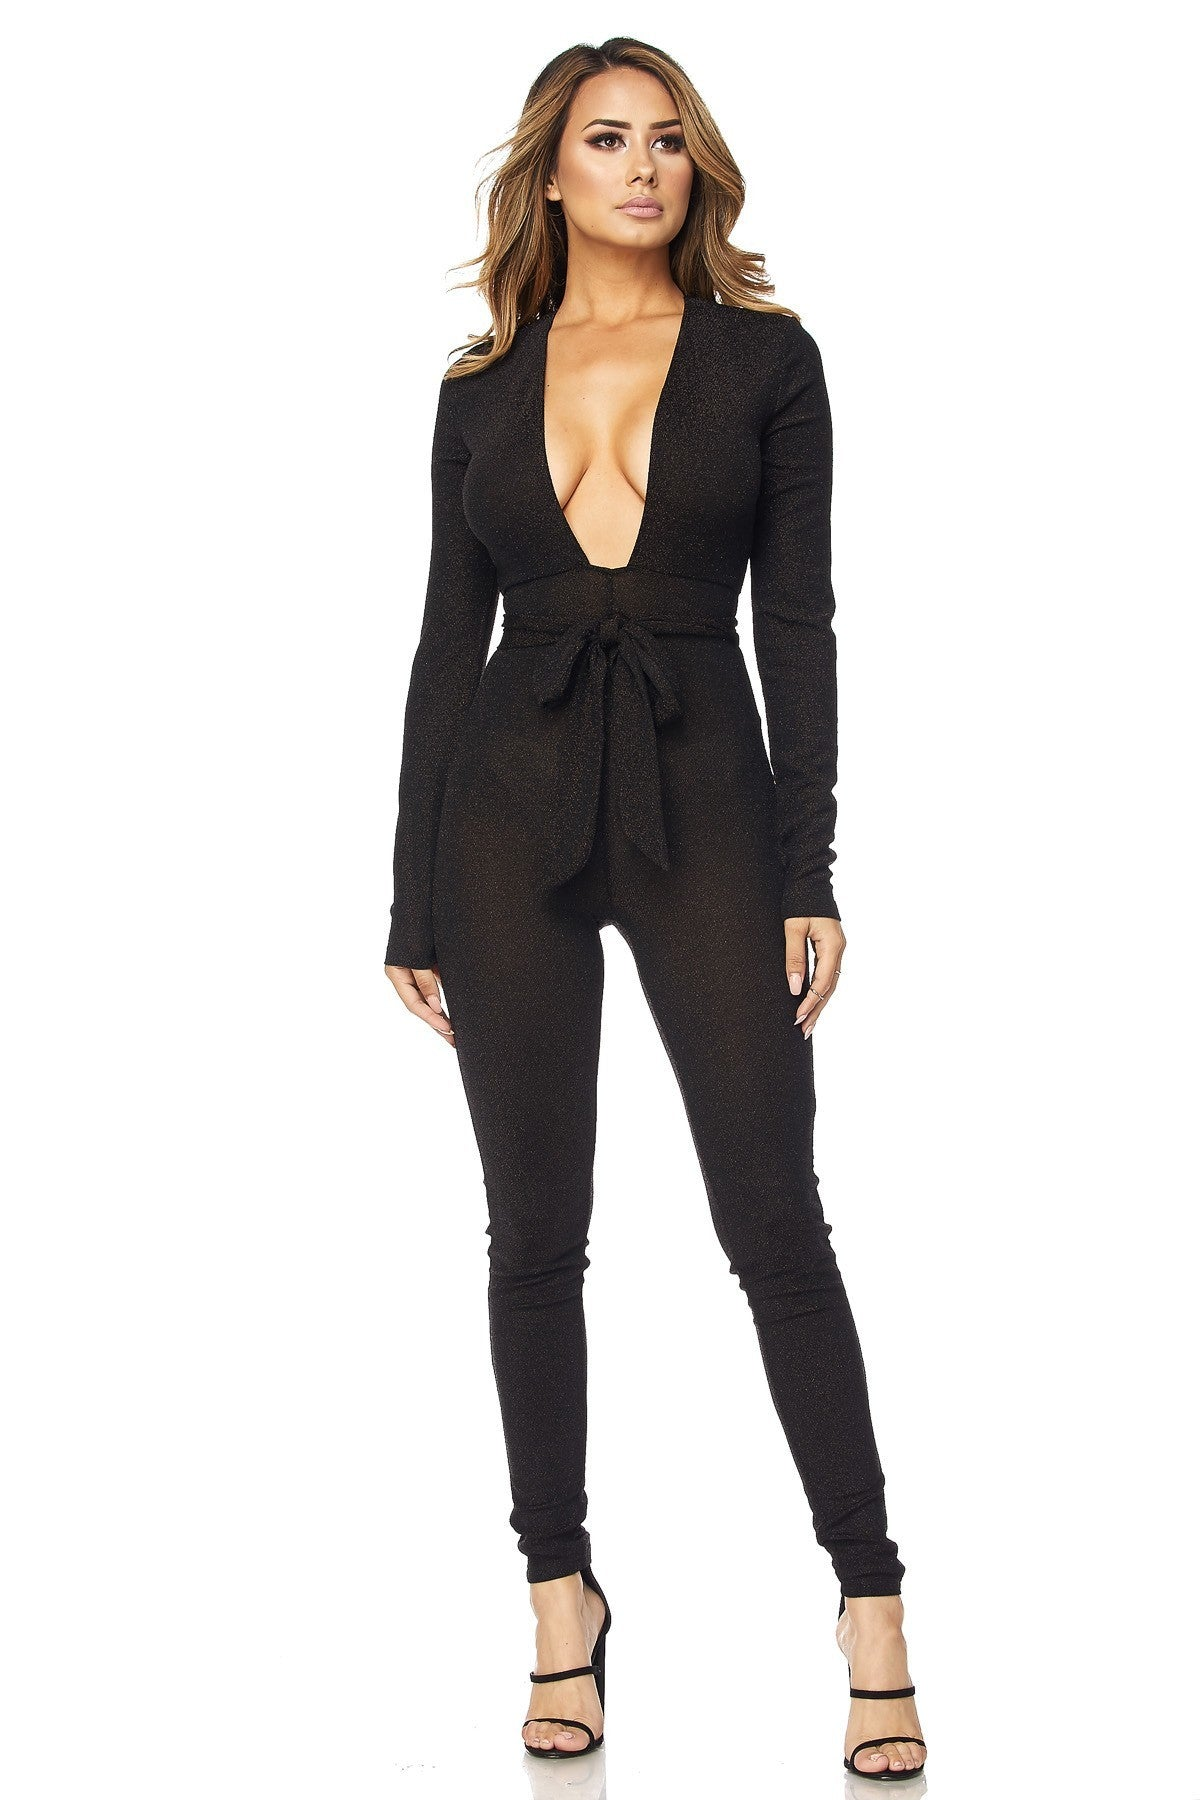 WOMENS HERA COLLECTION JUMPSUIT - BLACK SPARKLE